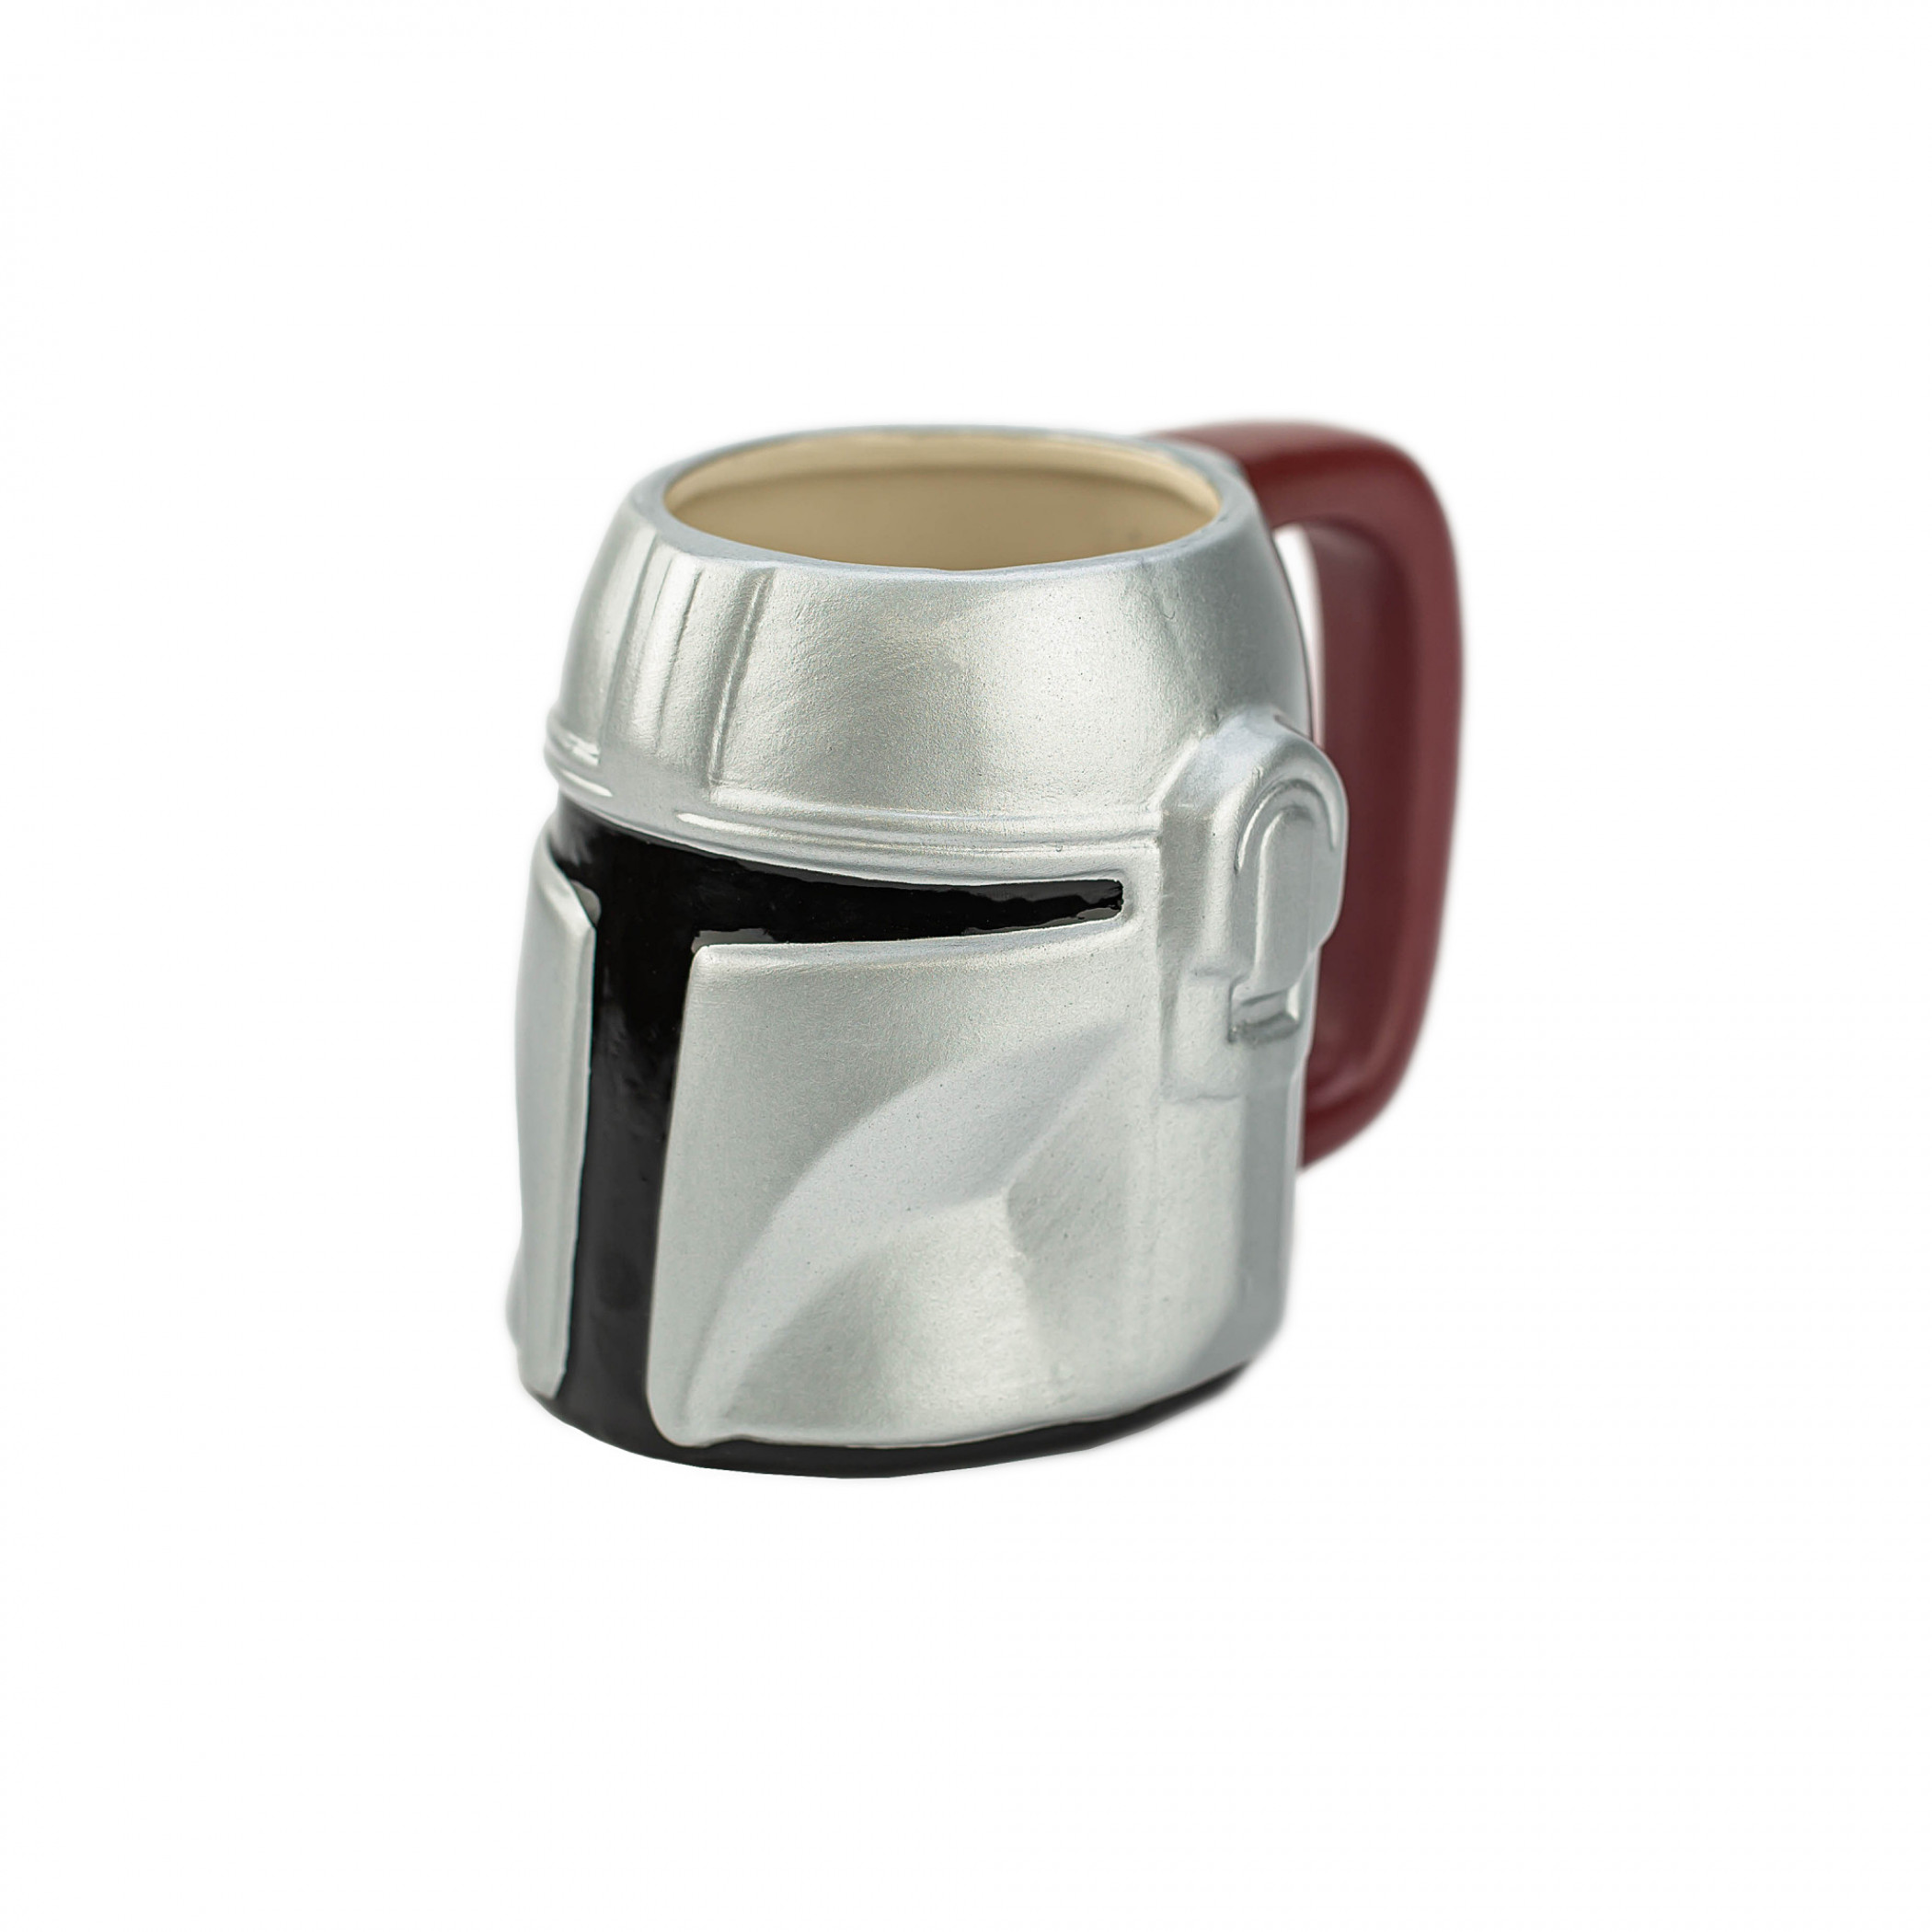 Star Wars The Mandalorian Helmet Sculpted Mug